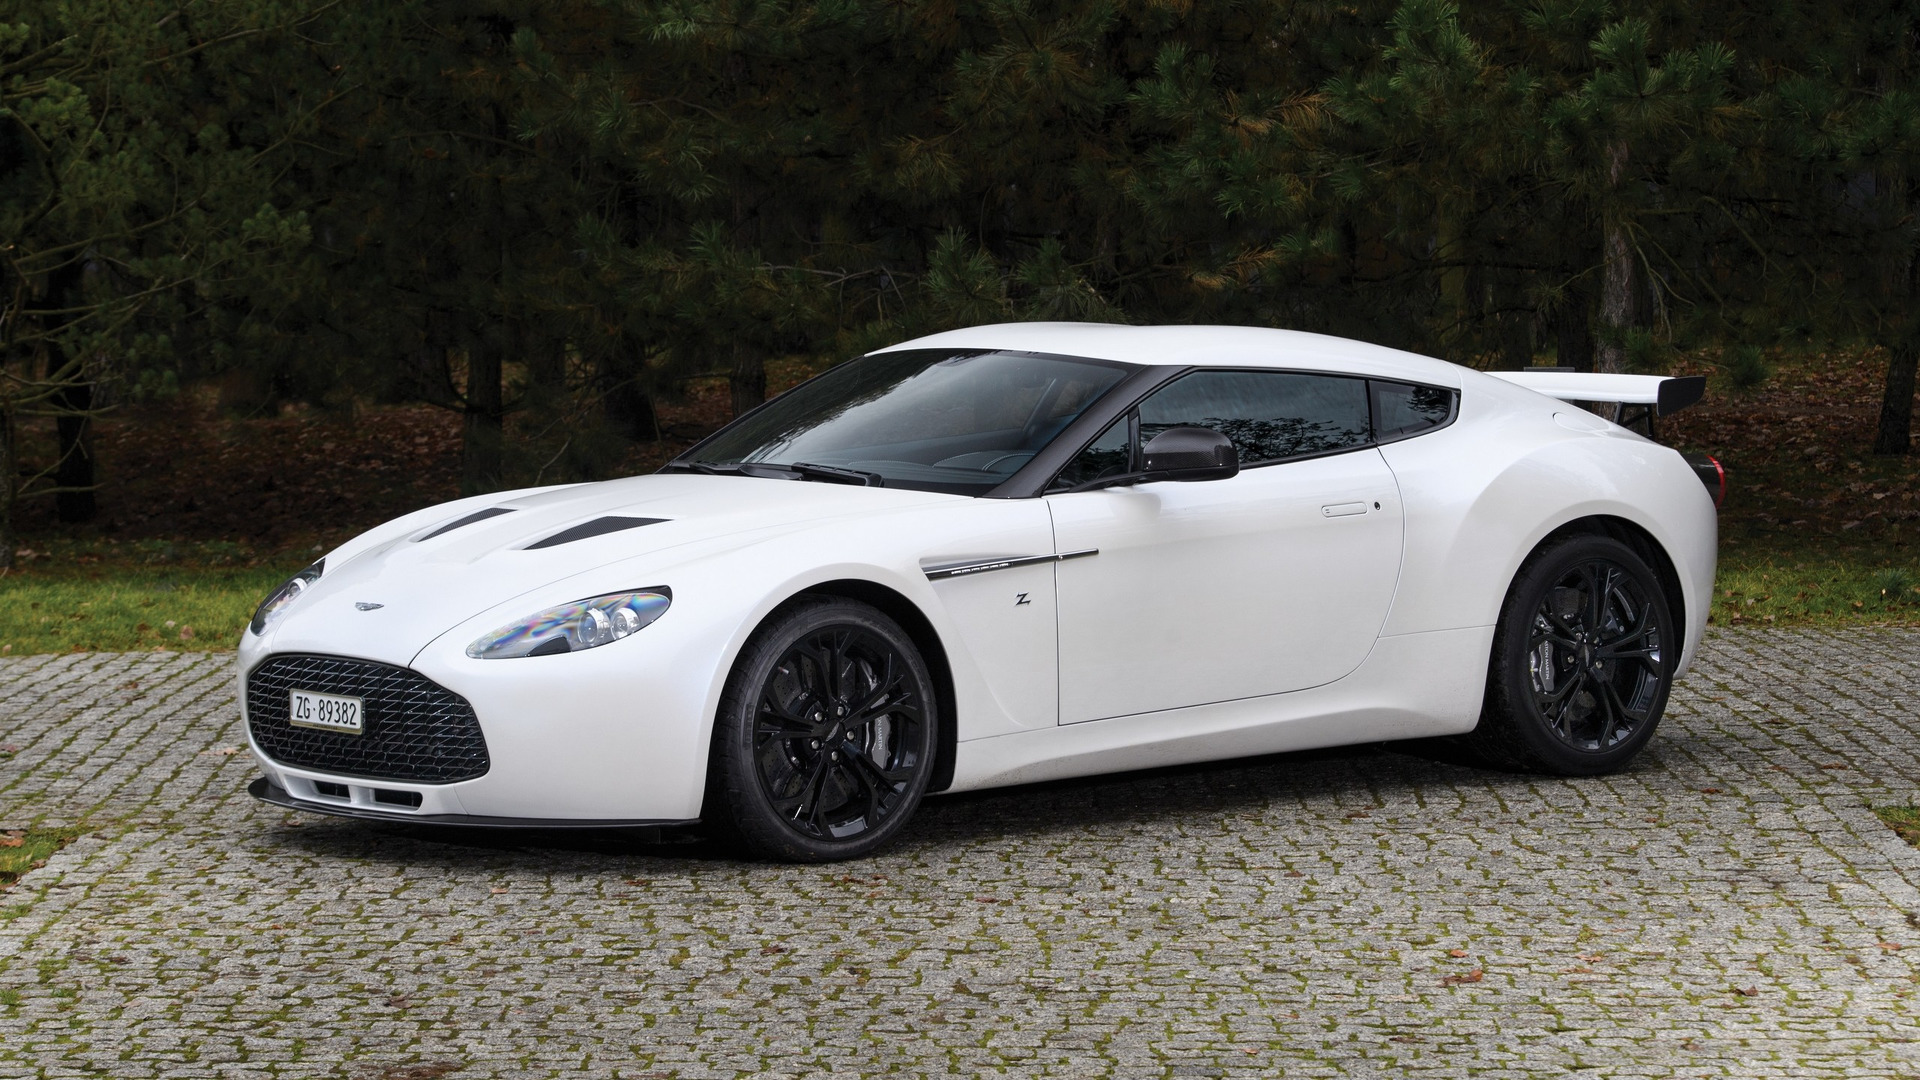 Aston Martin V12 Zagato And Db7 Zagato For Sale